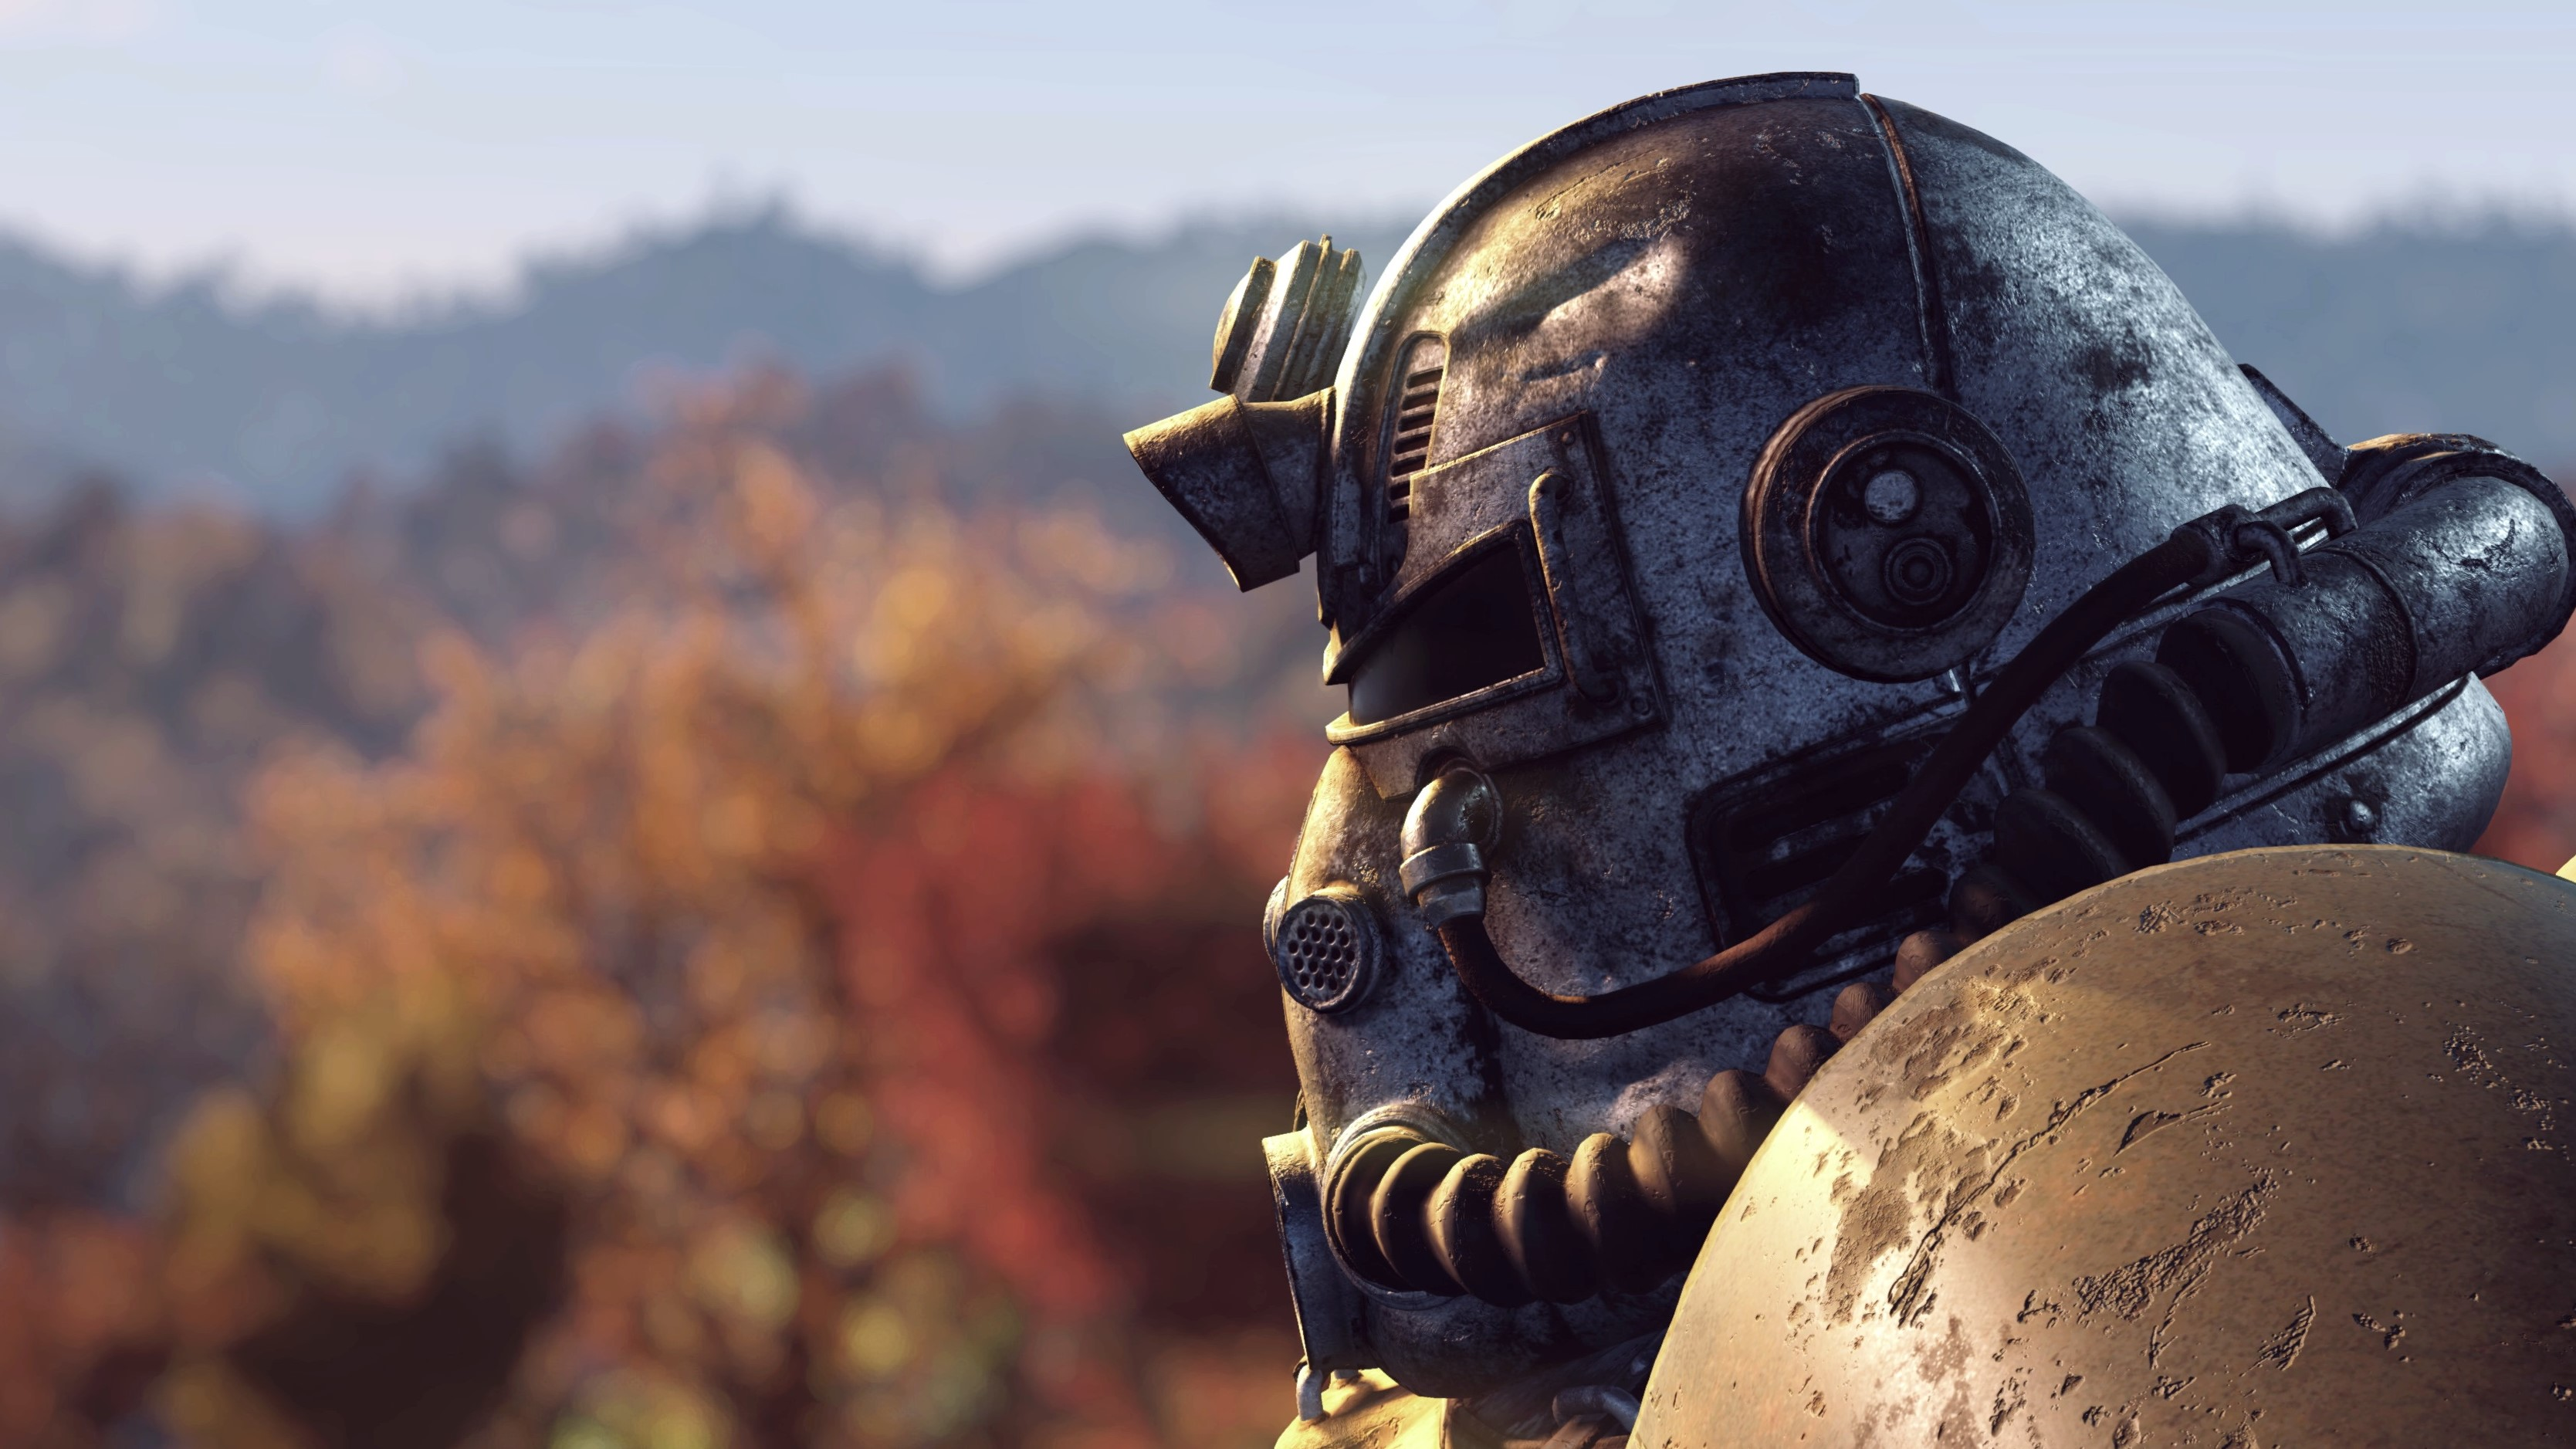 Microsoft has acquired Bethesda, some future games will be exclusive